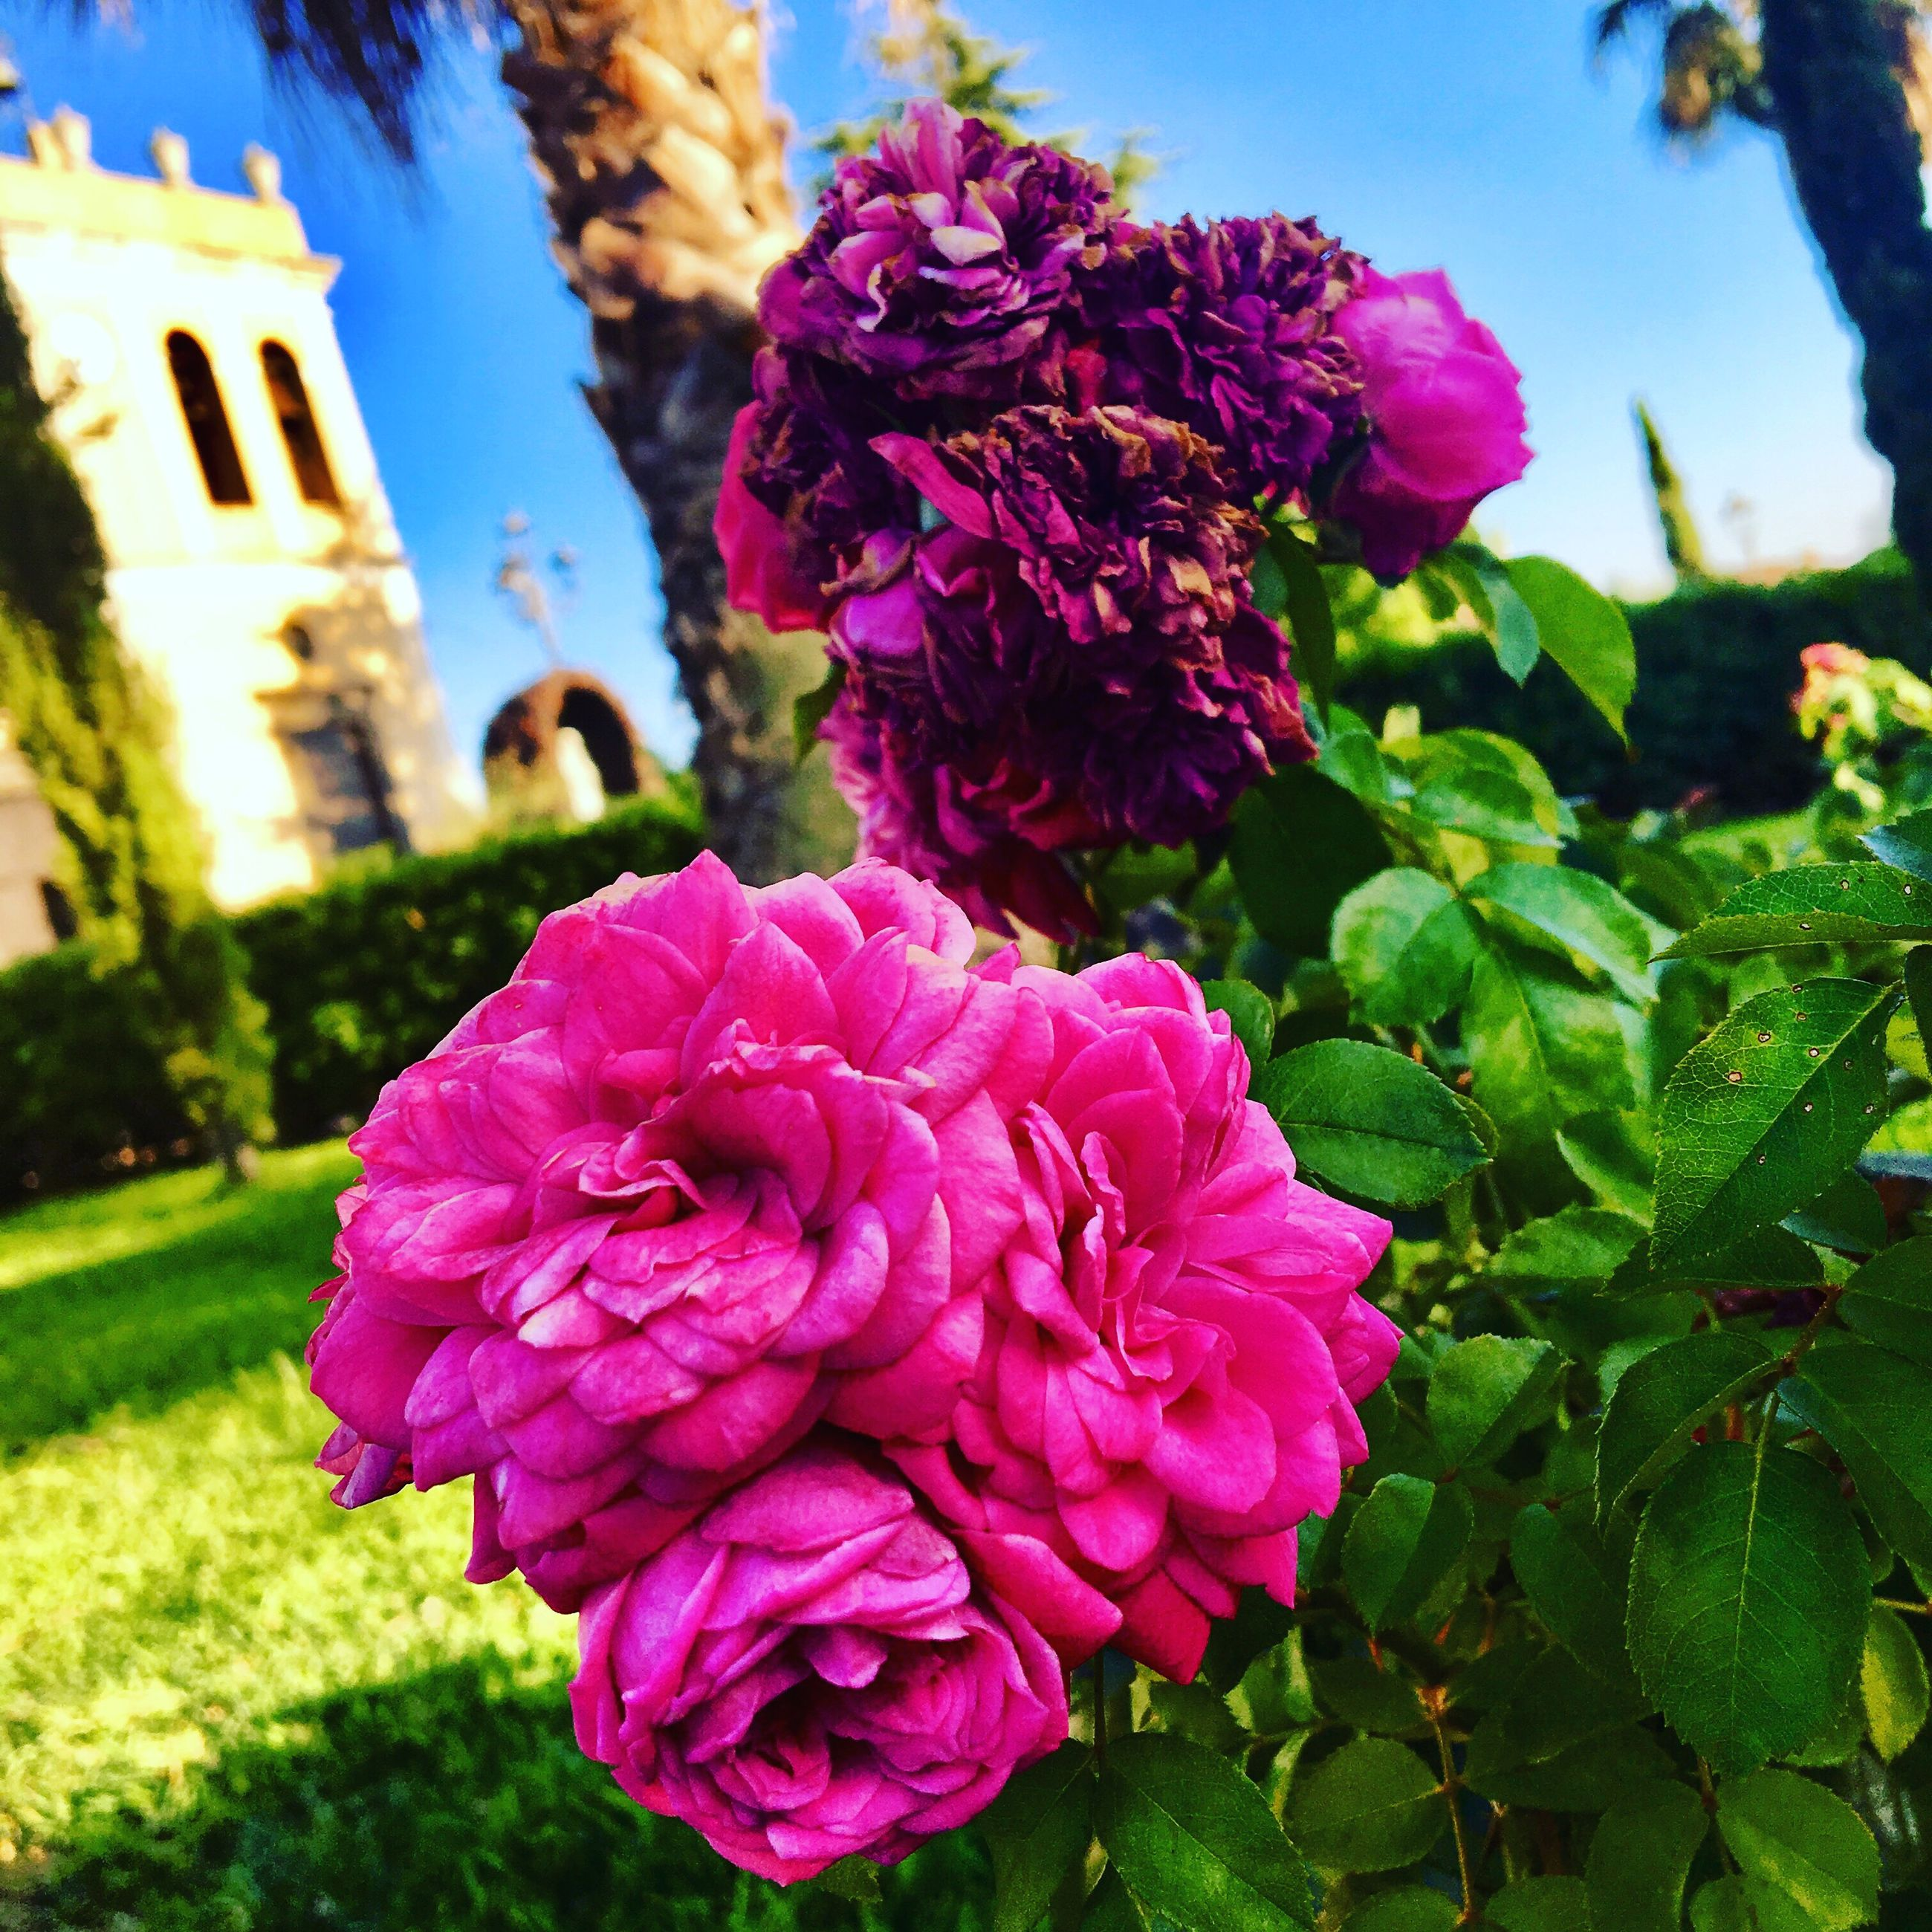 flower, petal, nature, fragility, beauty in nature, growth, outdoors, focus on foreground, day, flower head, pink color, blooming, freshness, plant, no people, close-up, architecture